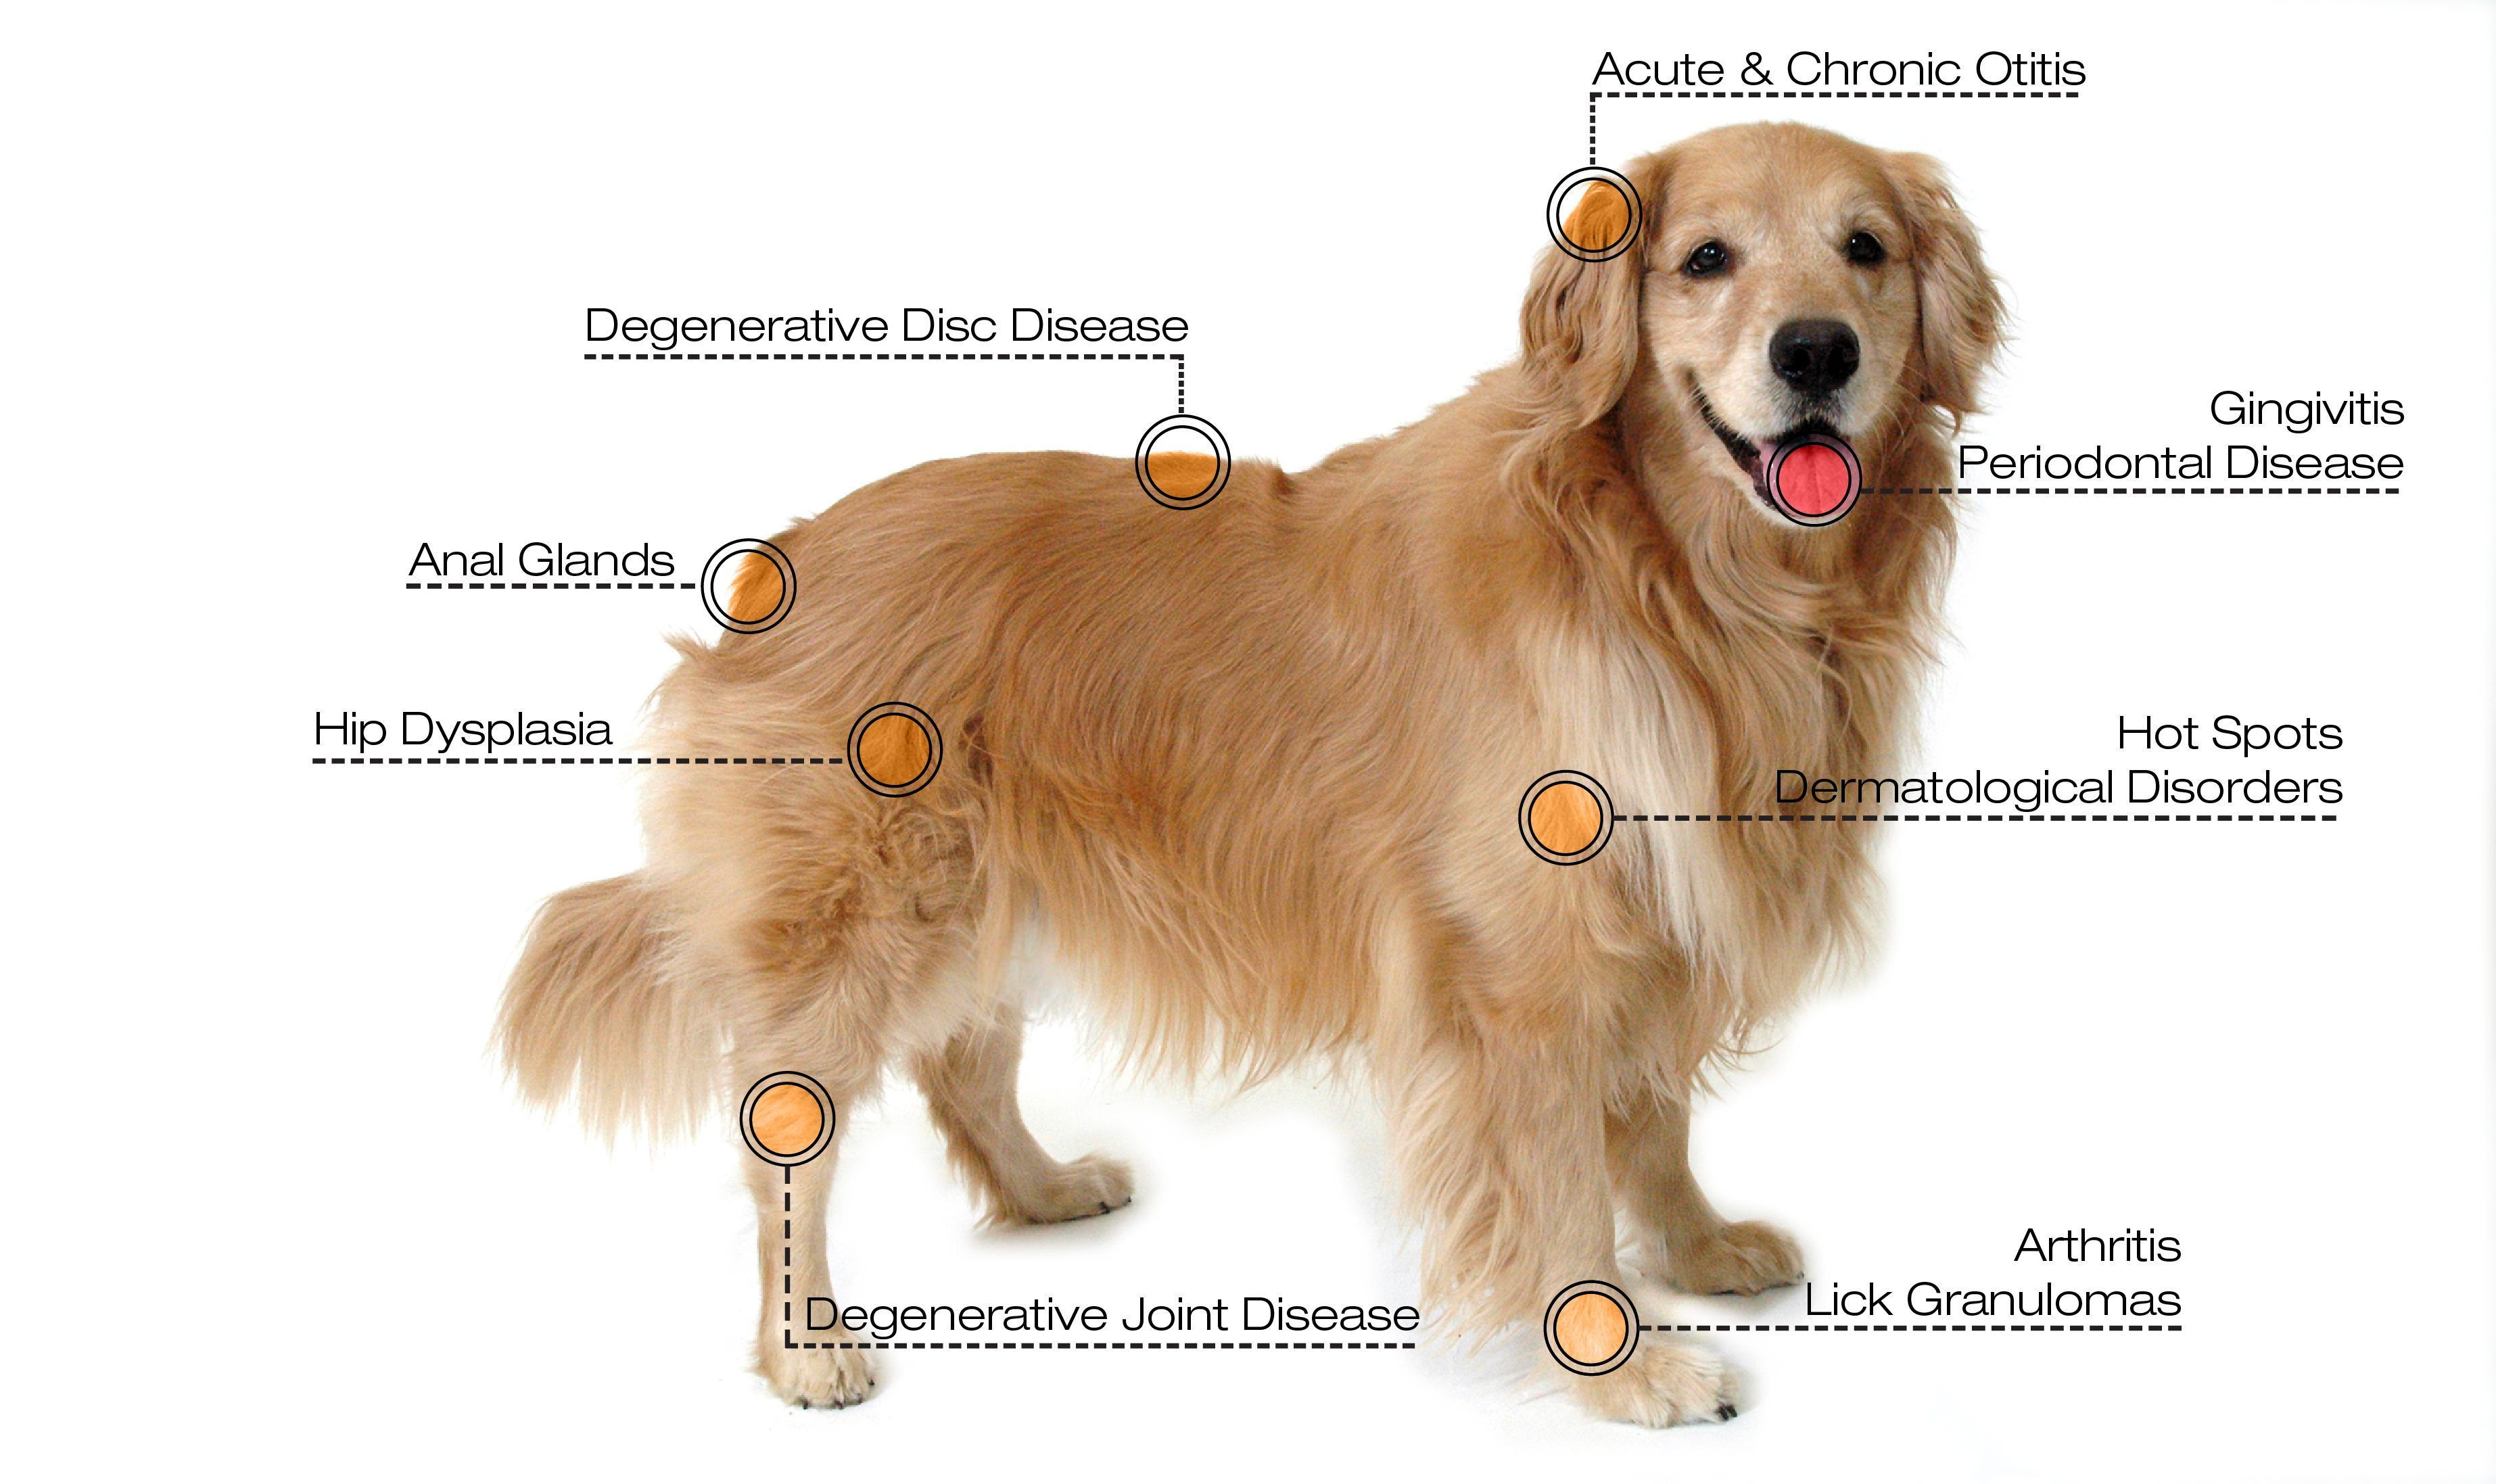 Cold Laser Therapy For Dogs Http Pets Ok Com Cold Laser